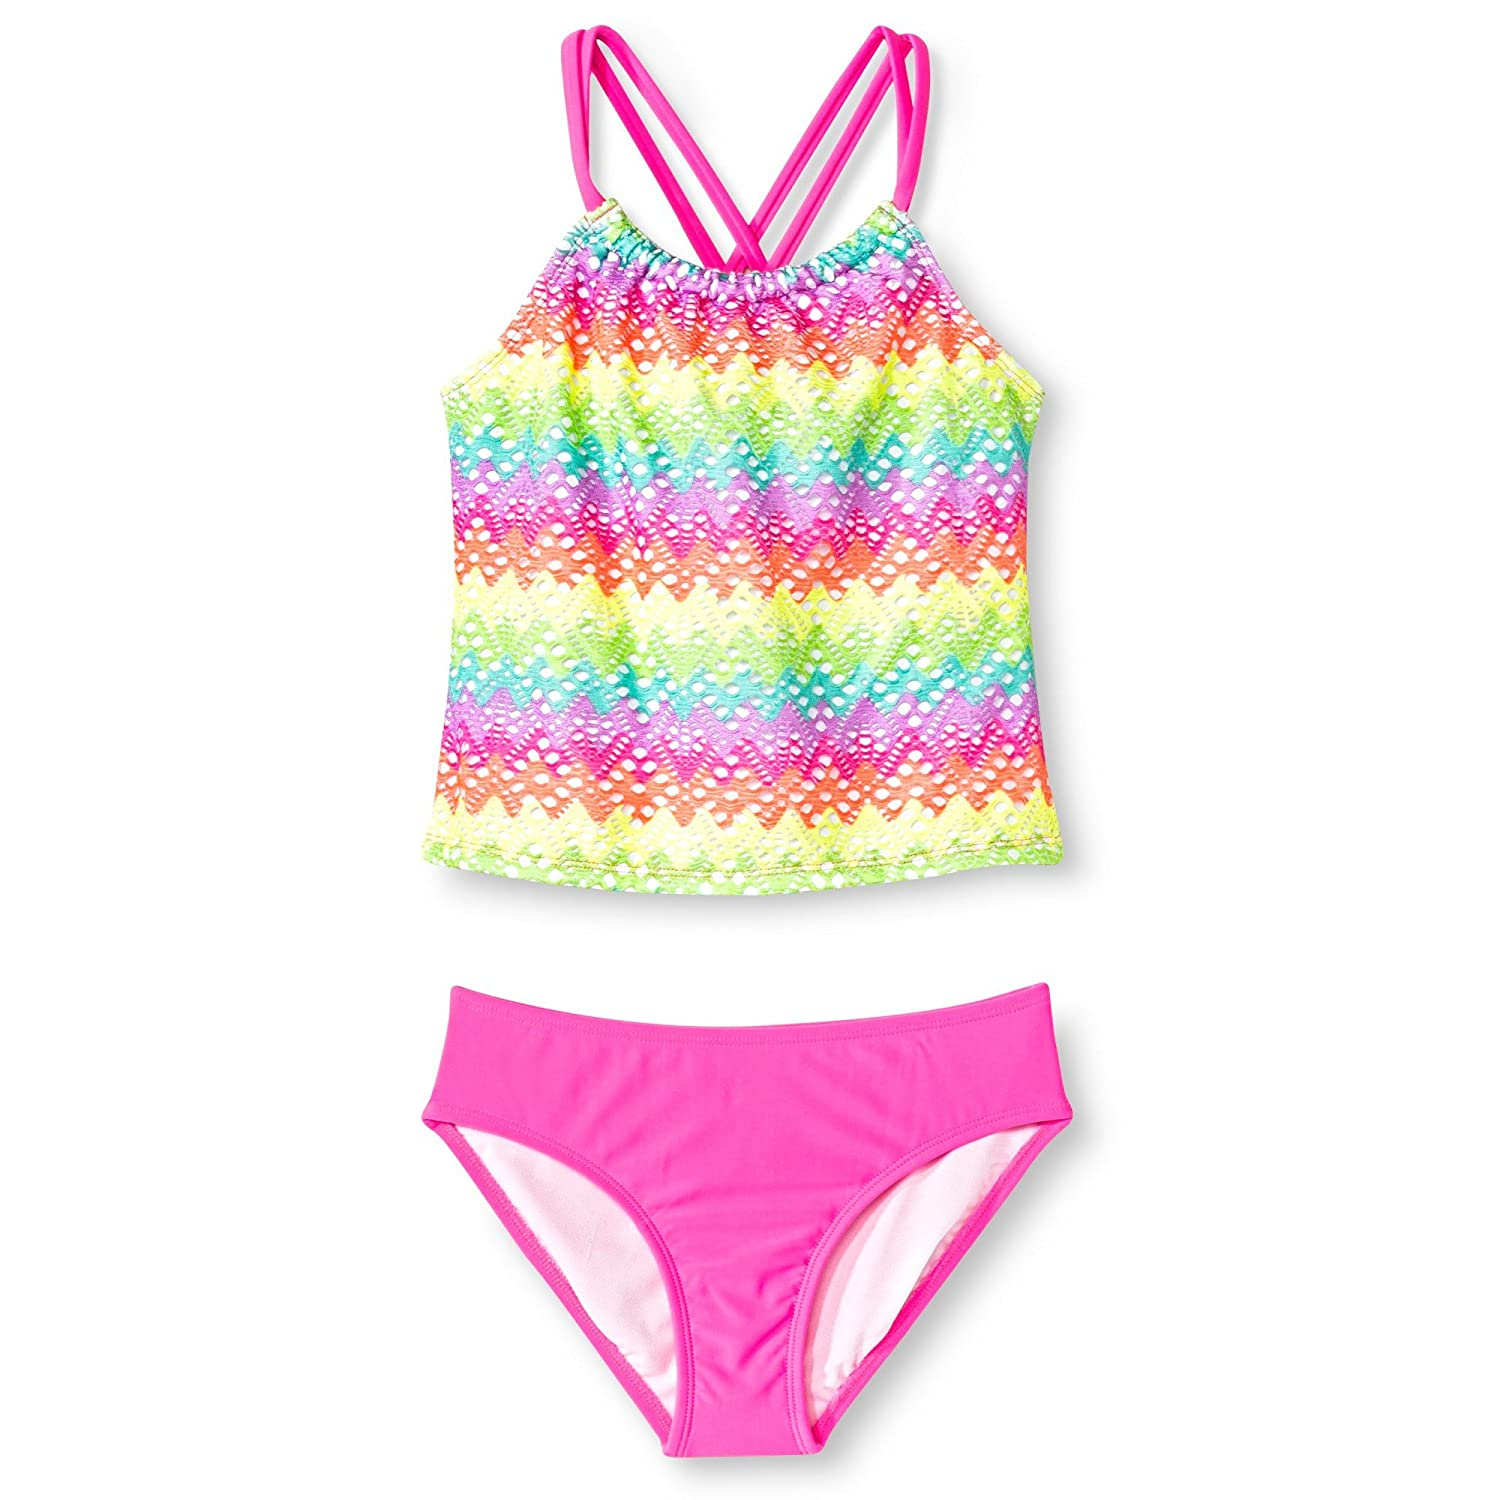 Circo Girls' 2-Piece Ombre Design Crochet Tankini Set